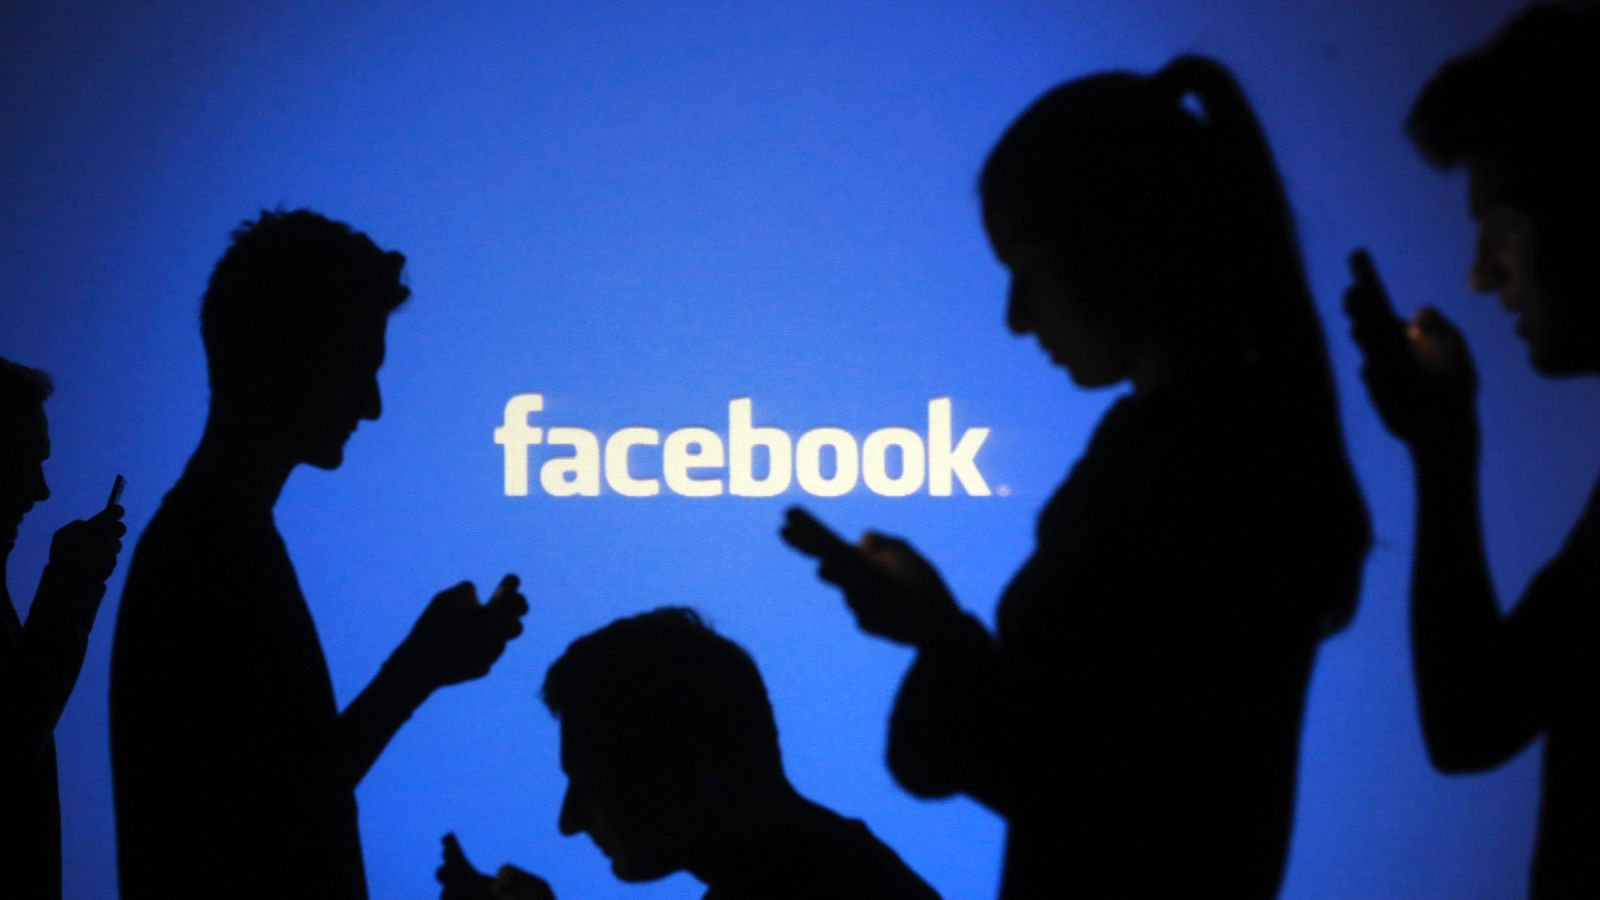 Facebook inc nasdaqfb might be moving away from its initial facebook buycottarizona